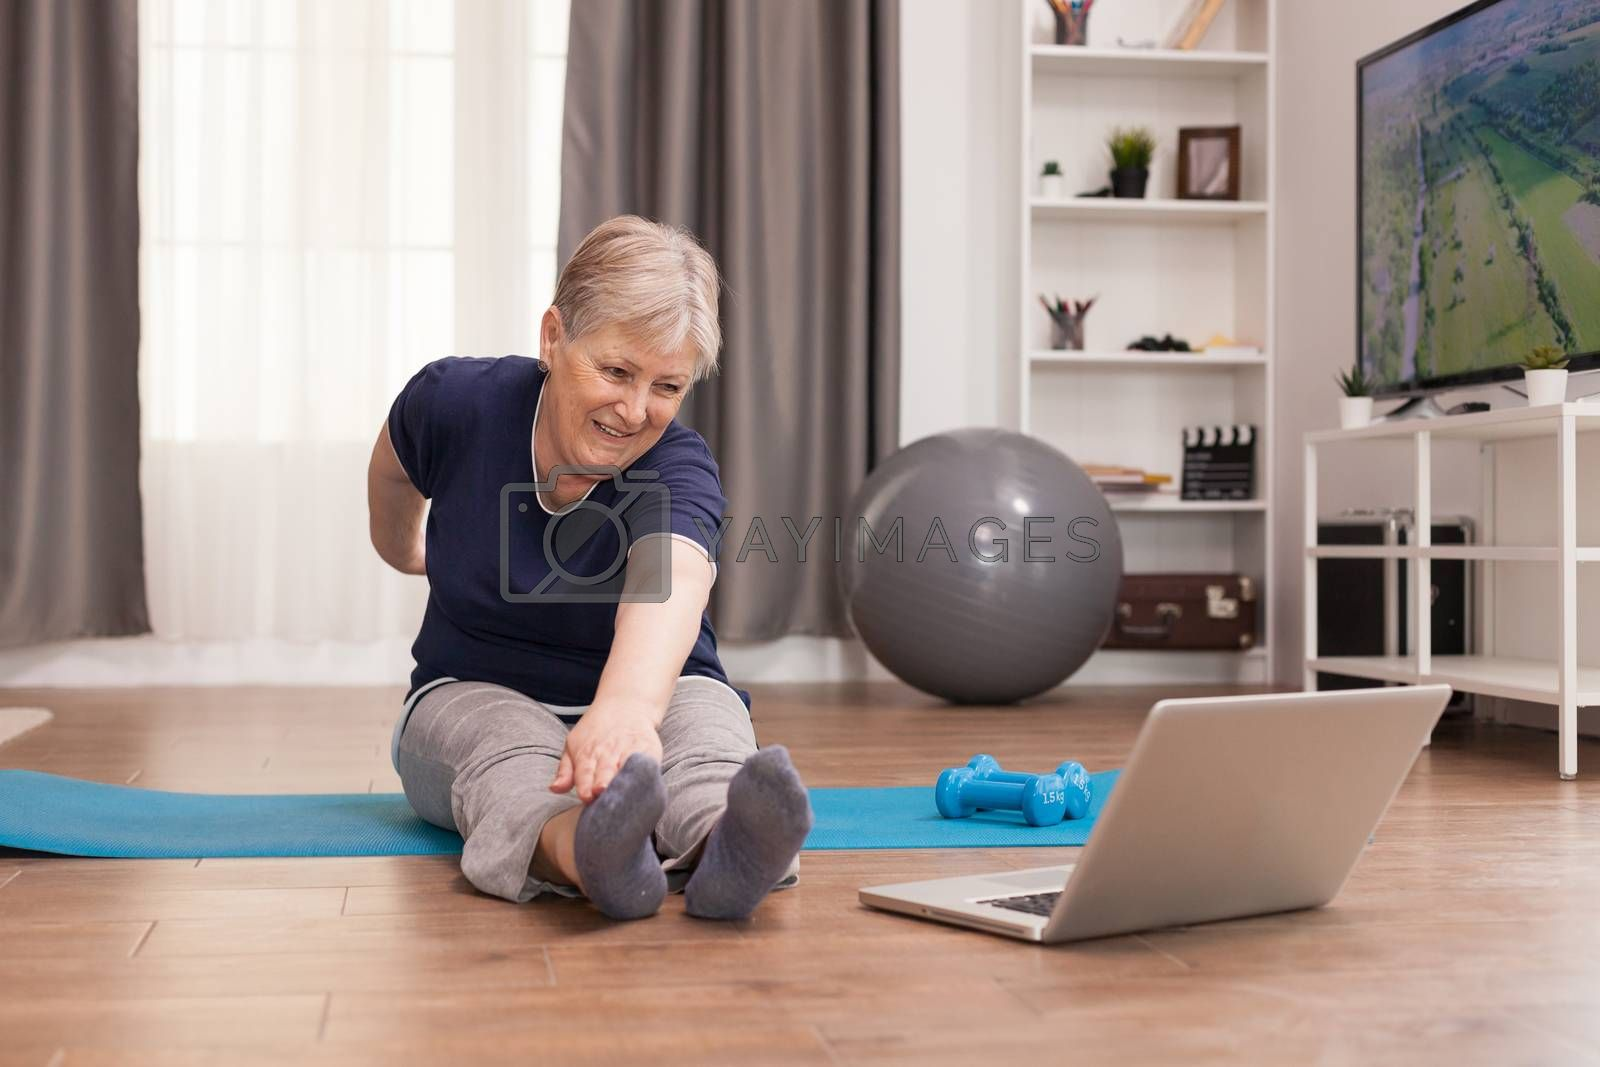 Cheerful old woman doing sports watching online lessons. Old person pensioner online internet exercise training at home sport activity with dumbbell, resistance band, swiss ball at elderly retirement age